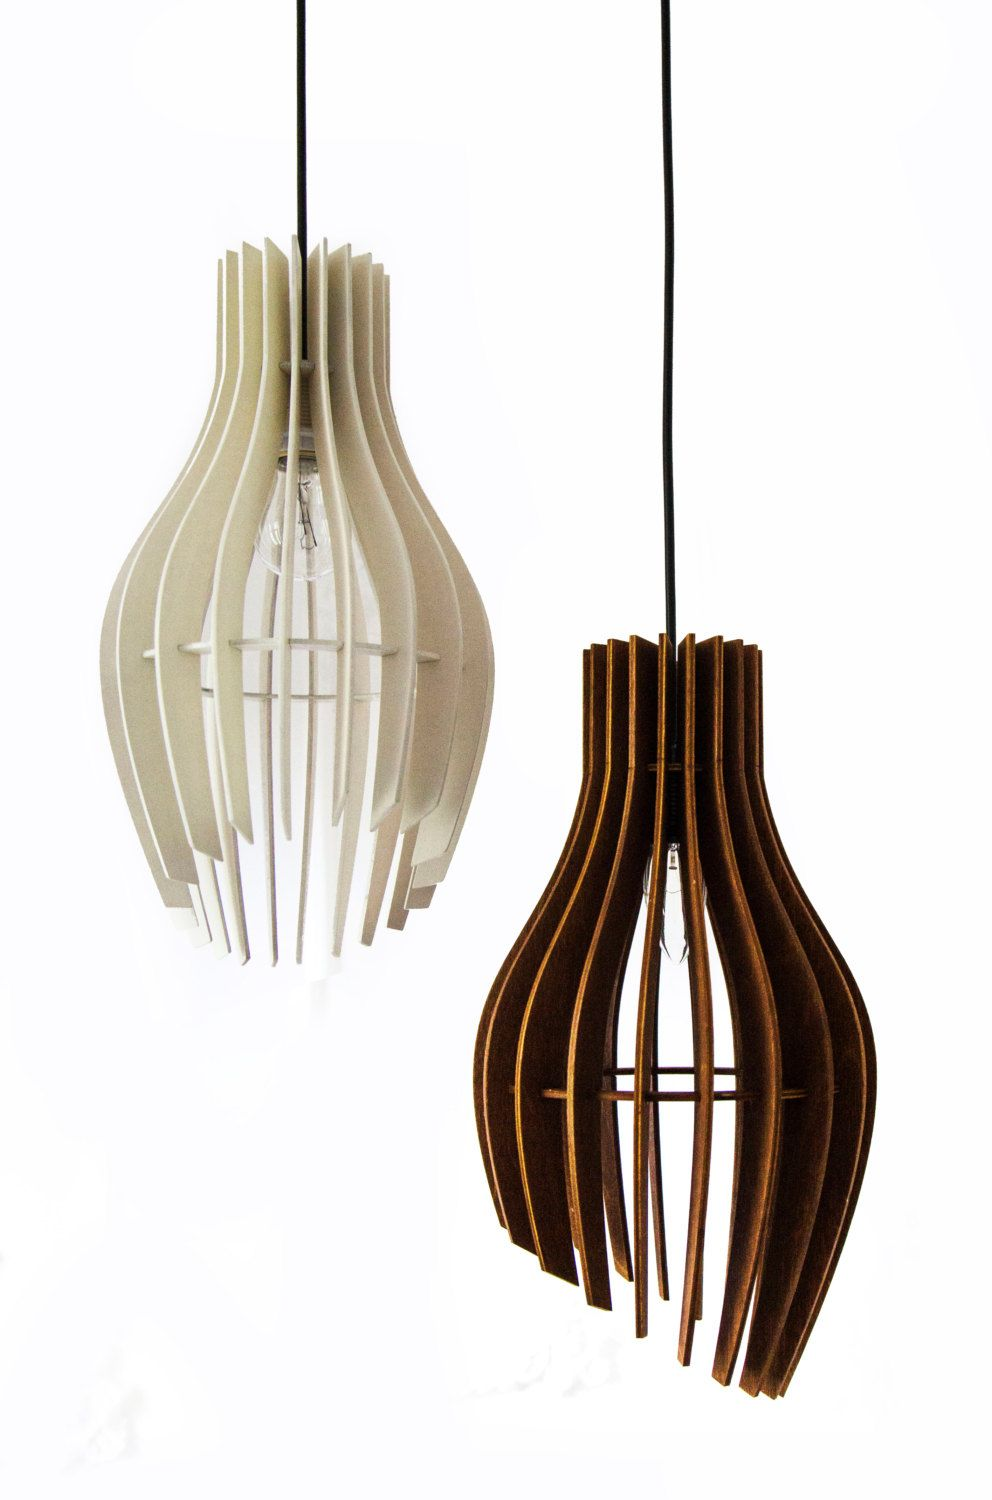 Stripes pendant light wood lamppendant lighting plywood hanging light designer light ceiling light lighting fixture